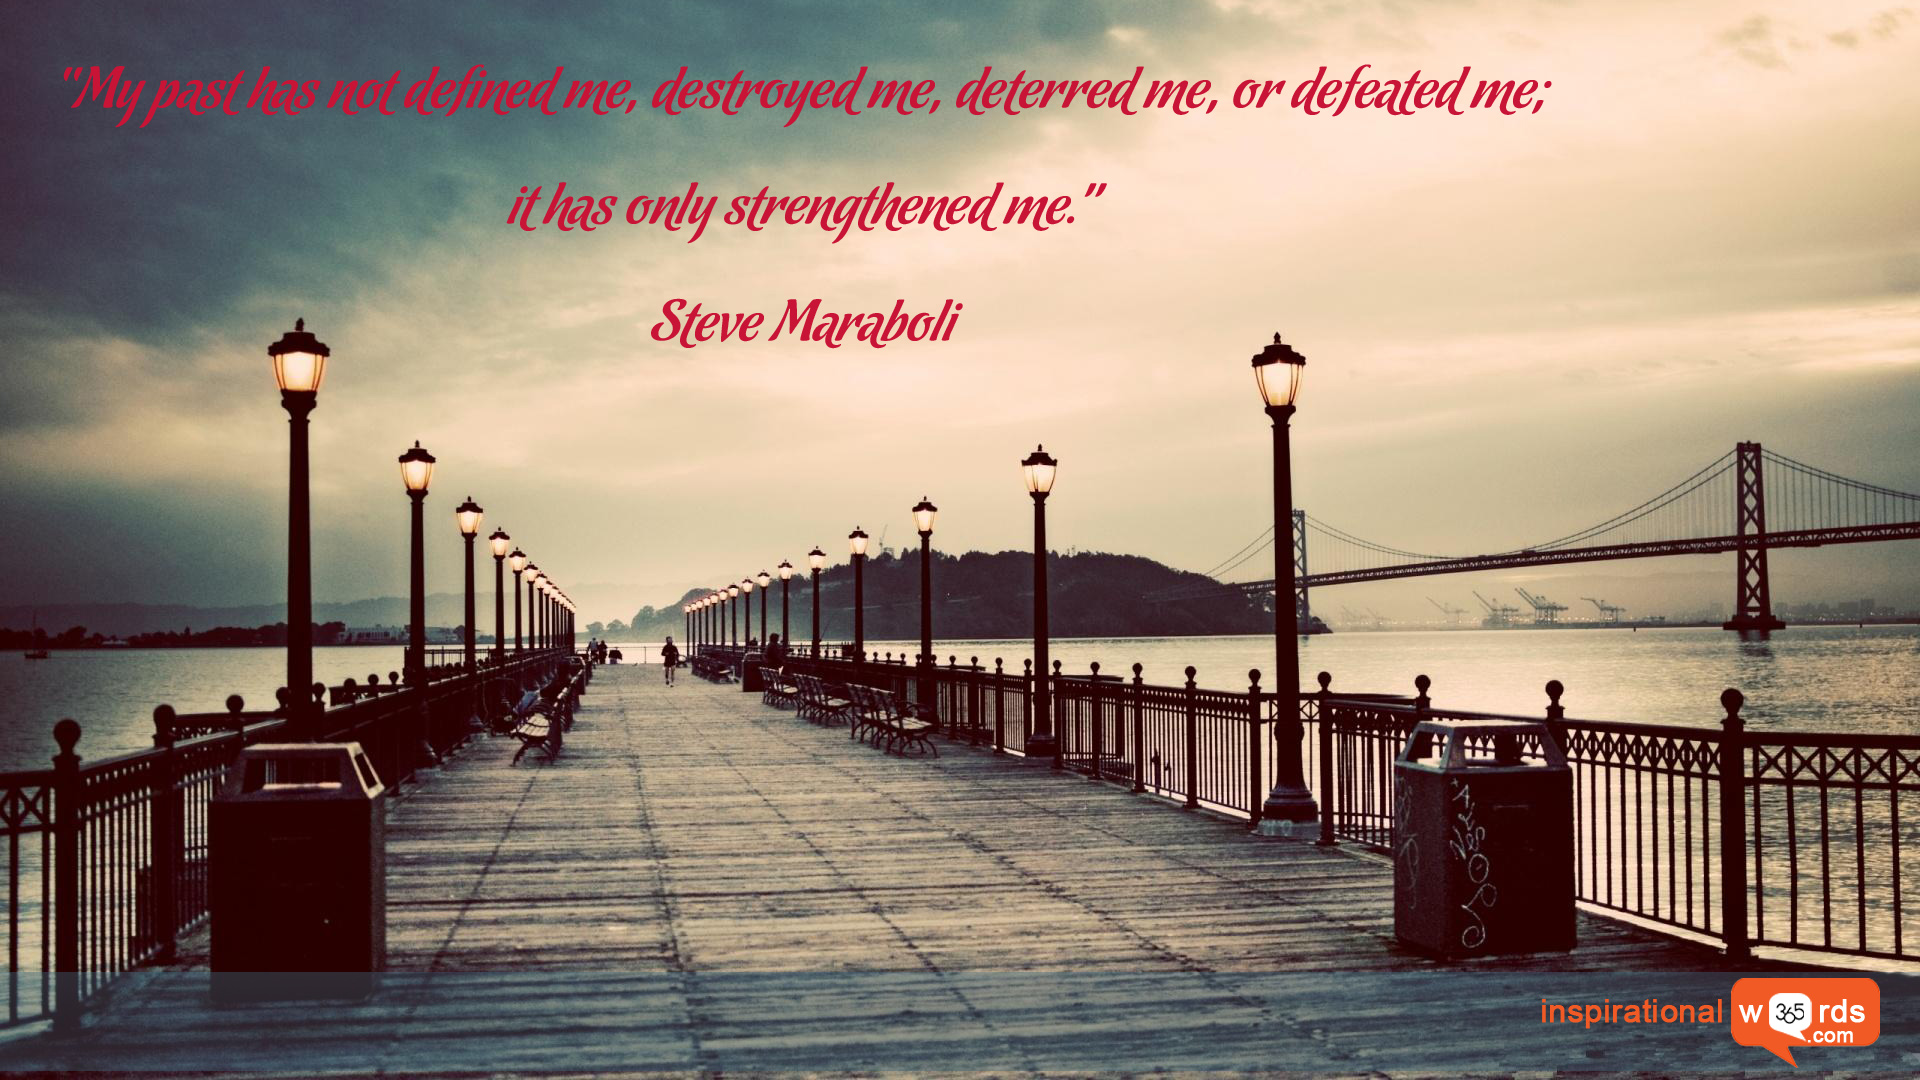 Inspirational Wallpaper Quote by Steve Maraboli